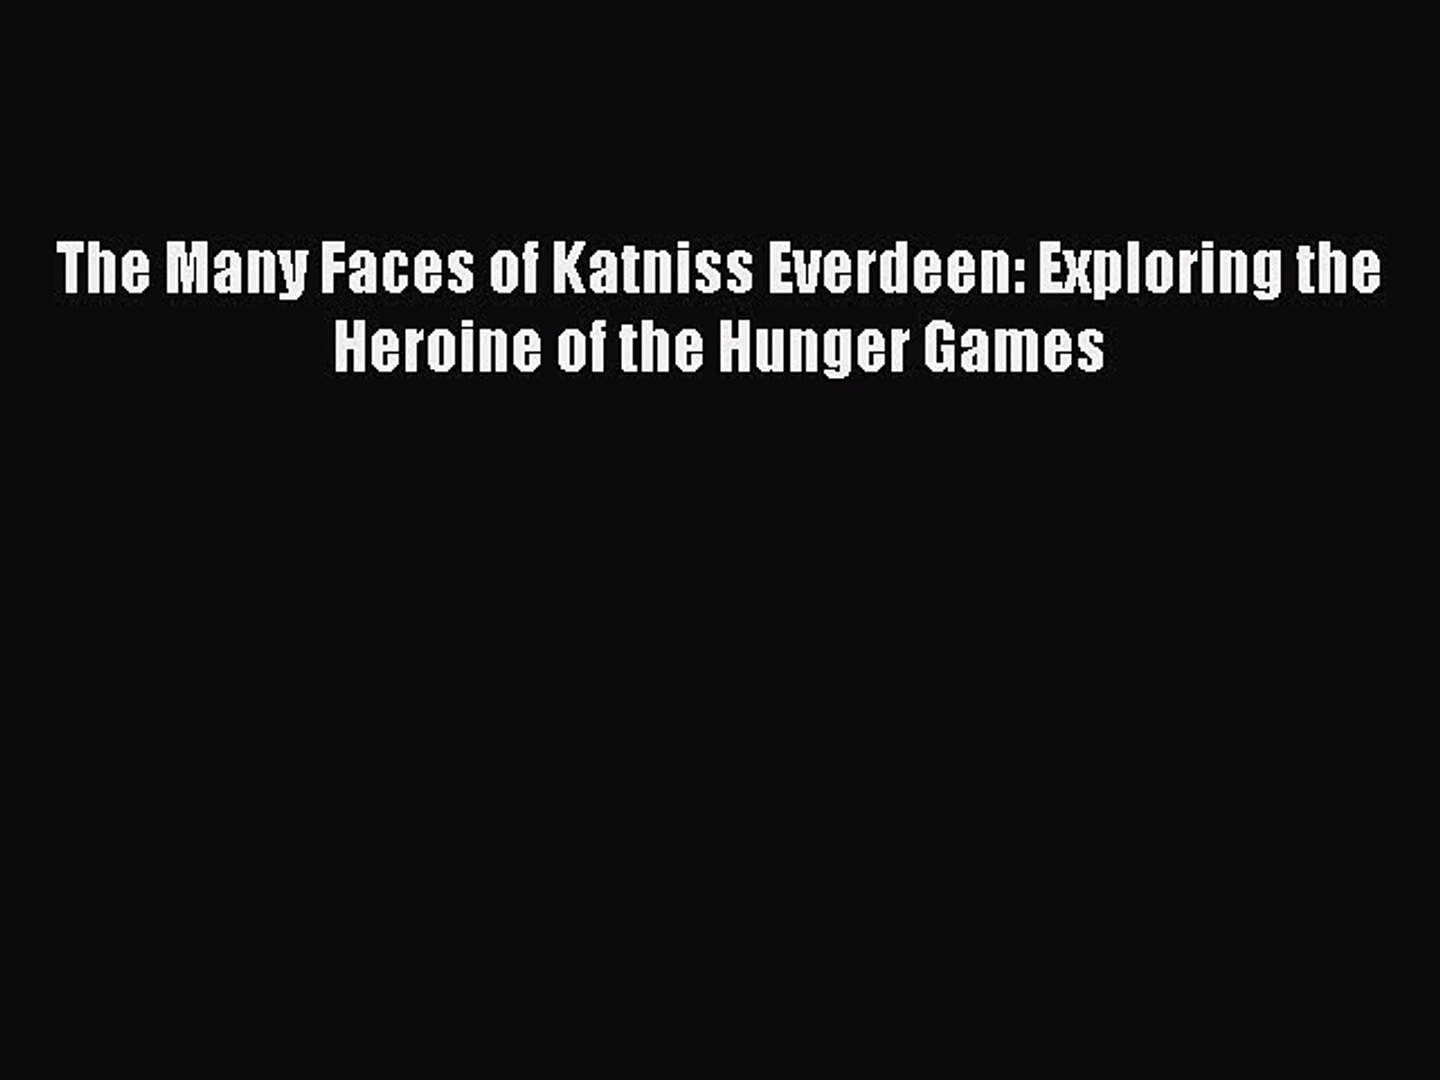 Download The Many Faces of Katniss Everdeen: Exploring the Heroine of the Hunger Games Ebook